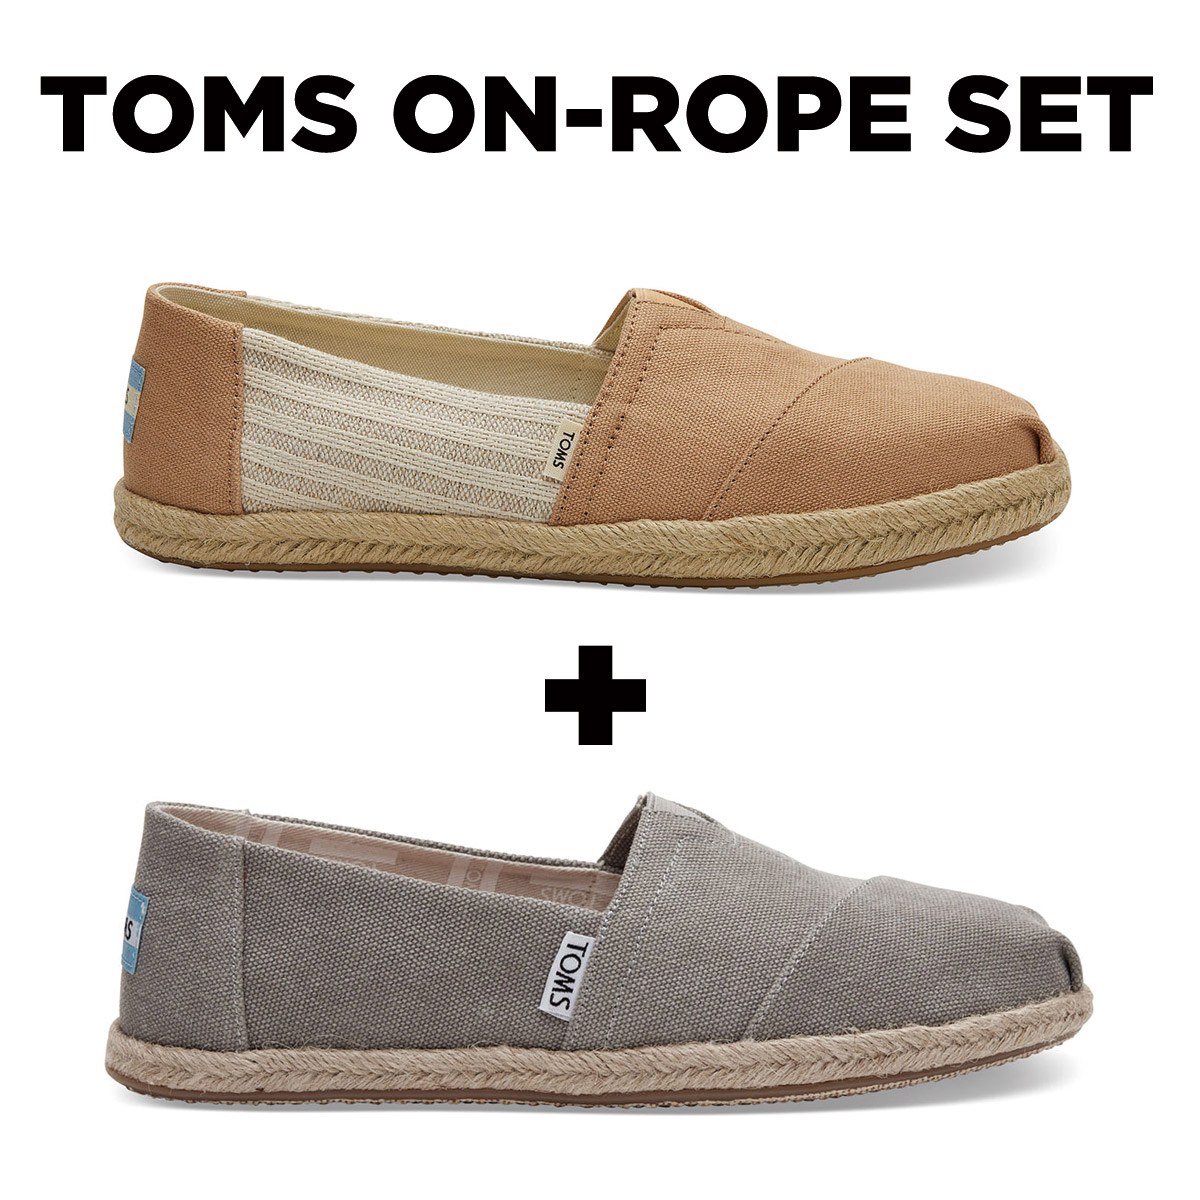 TOMS ON-ROPE WOMENS-C SET